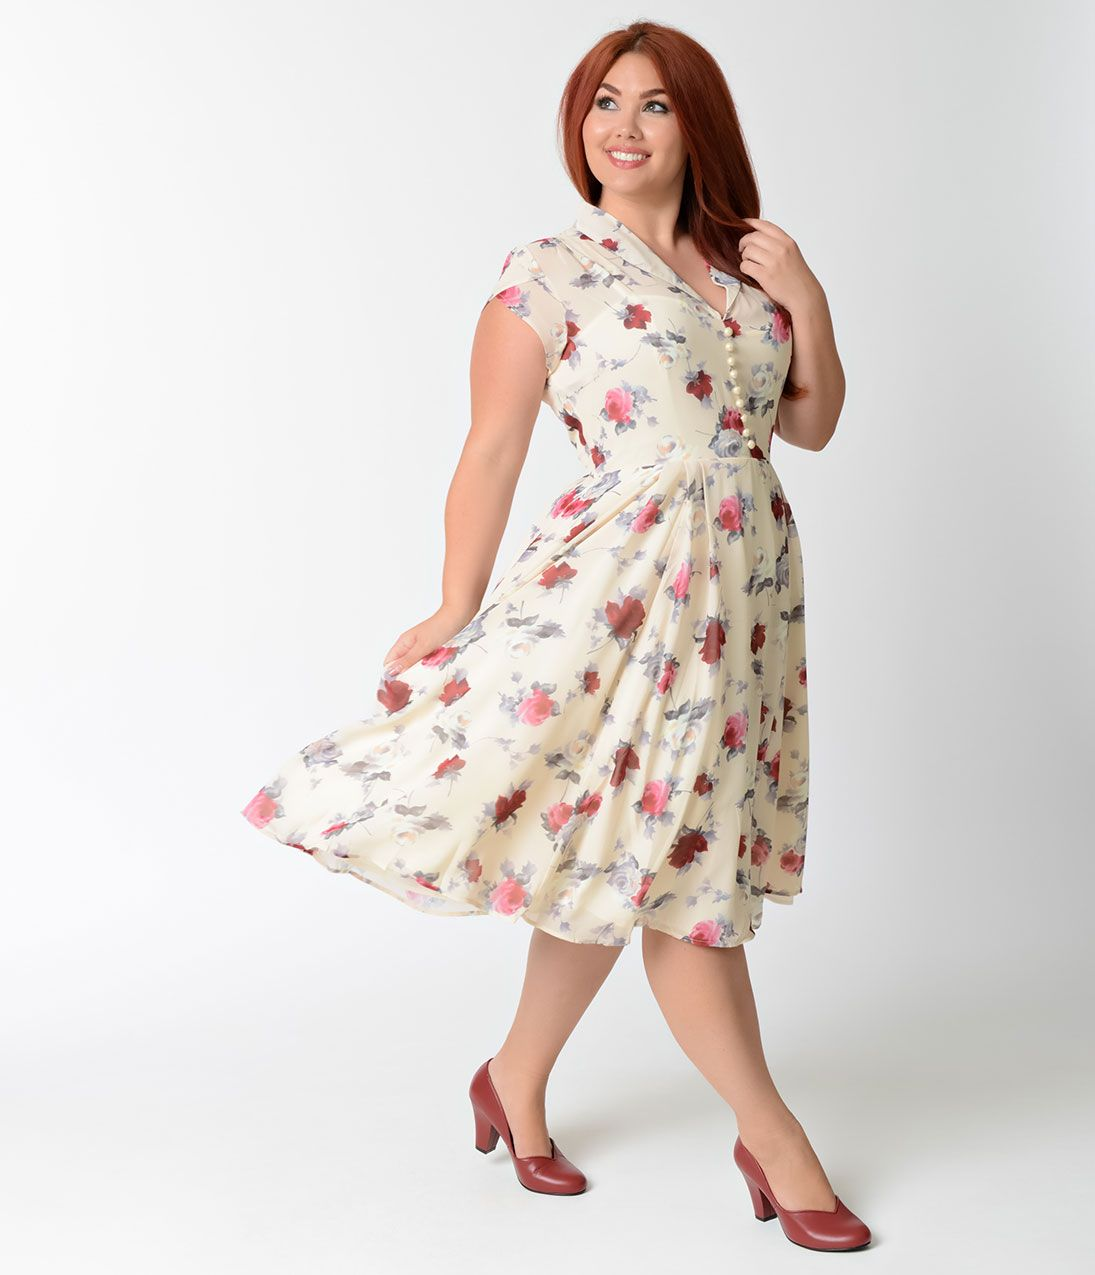 Vintage Style Dresses: 30s, 40s, 50s, and 60s | 1940s -1950s ...